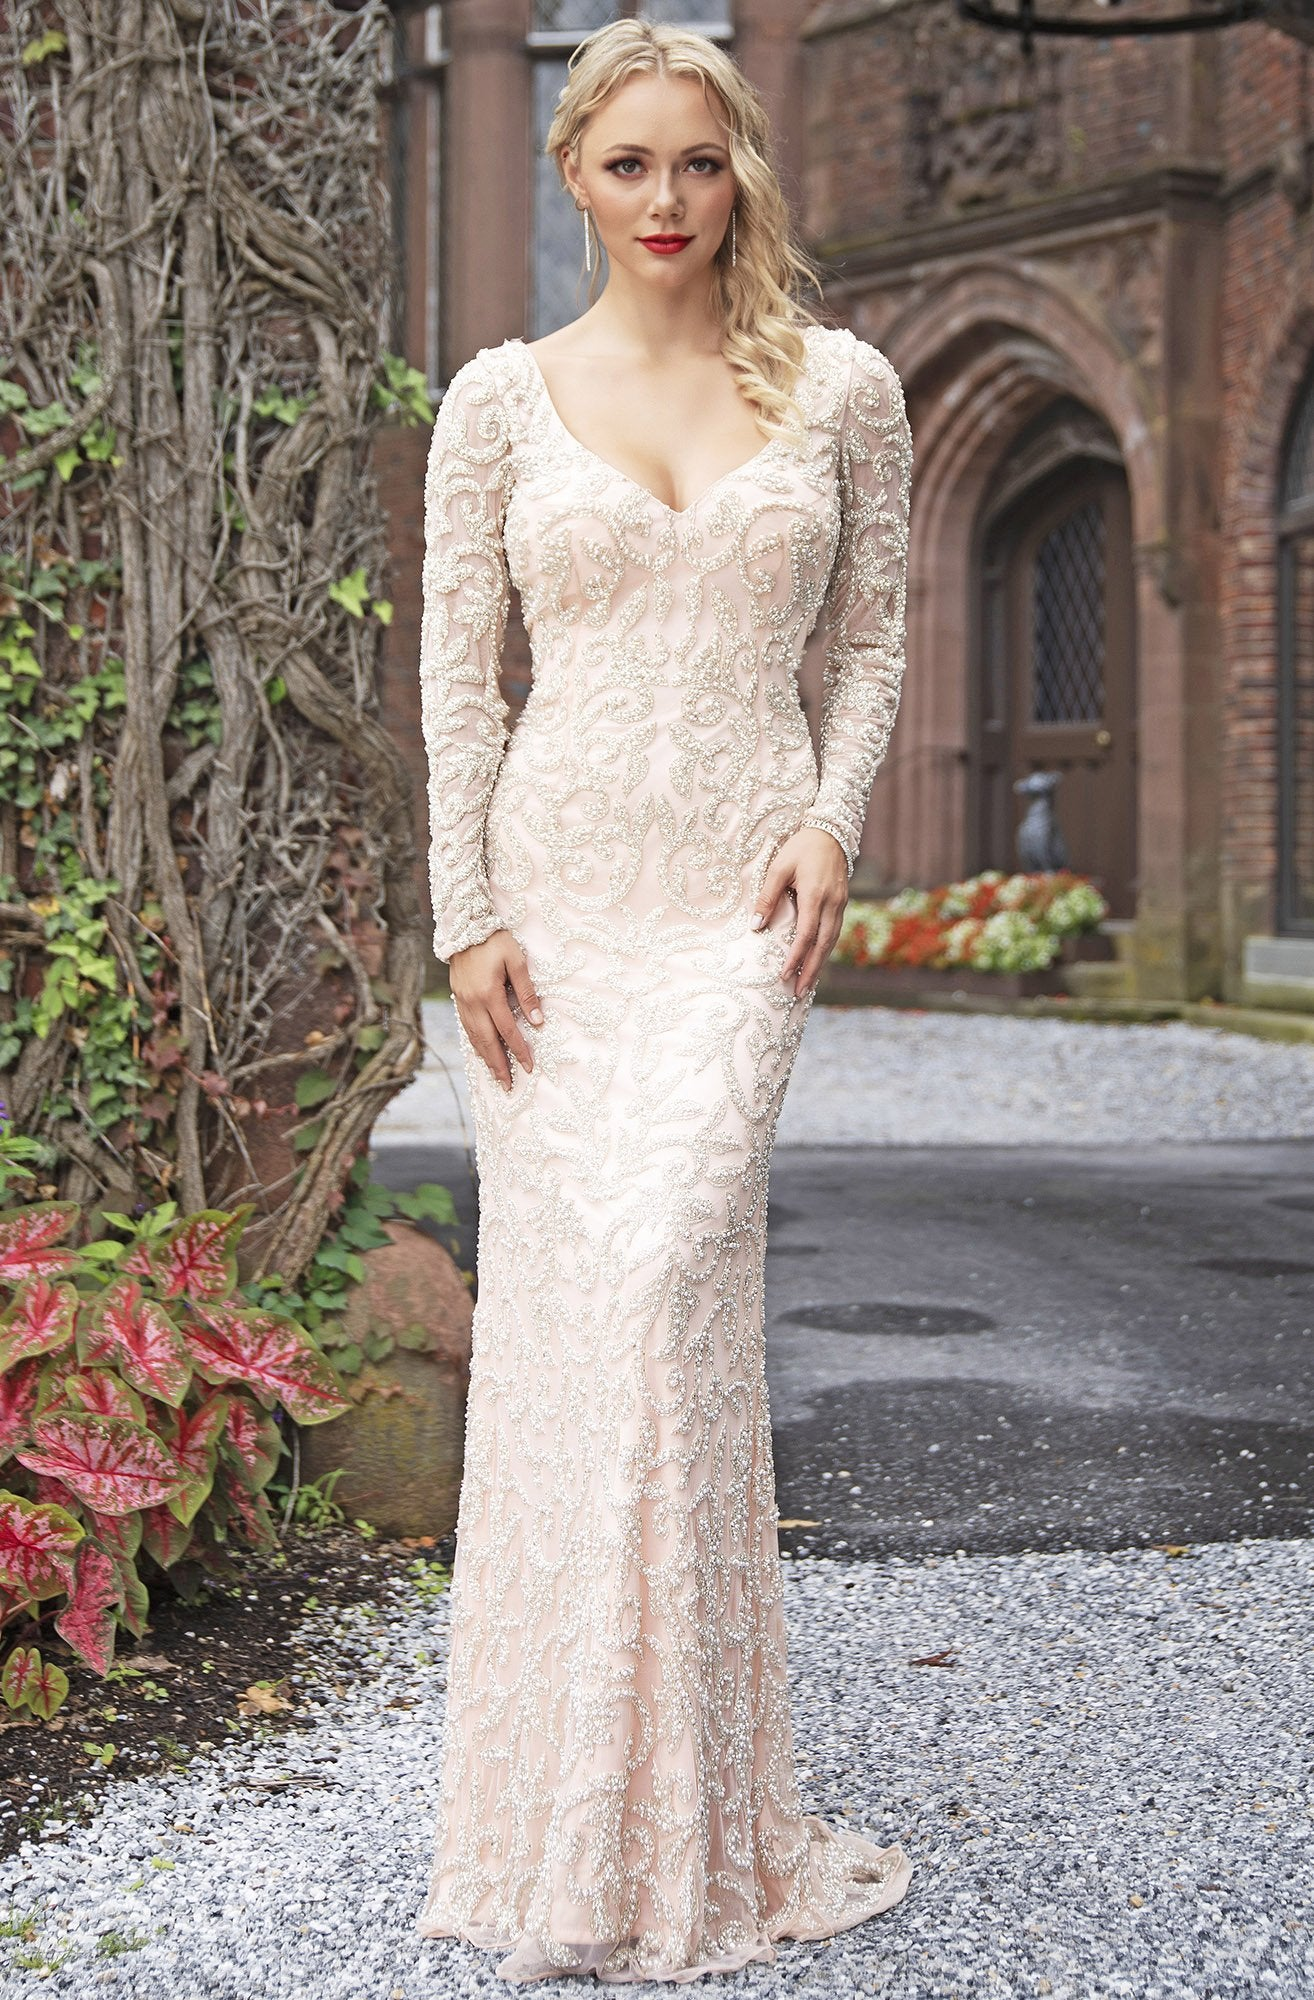 Primavera Couture - 3173 Scroll Motif Beaded Long Sleeve Sheath Gown In Pink and Silver